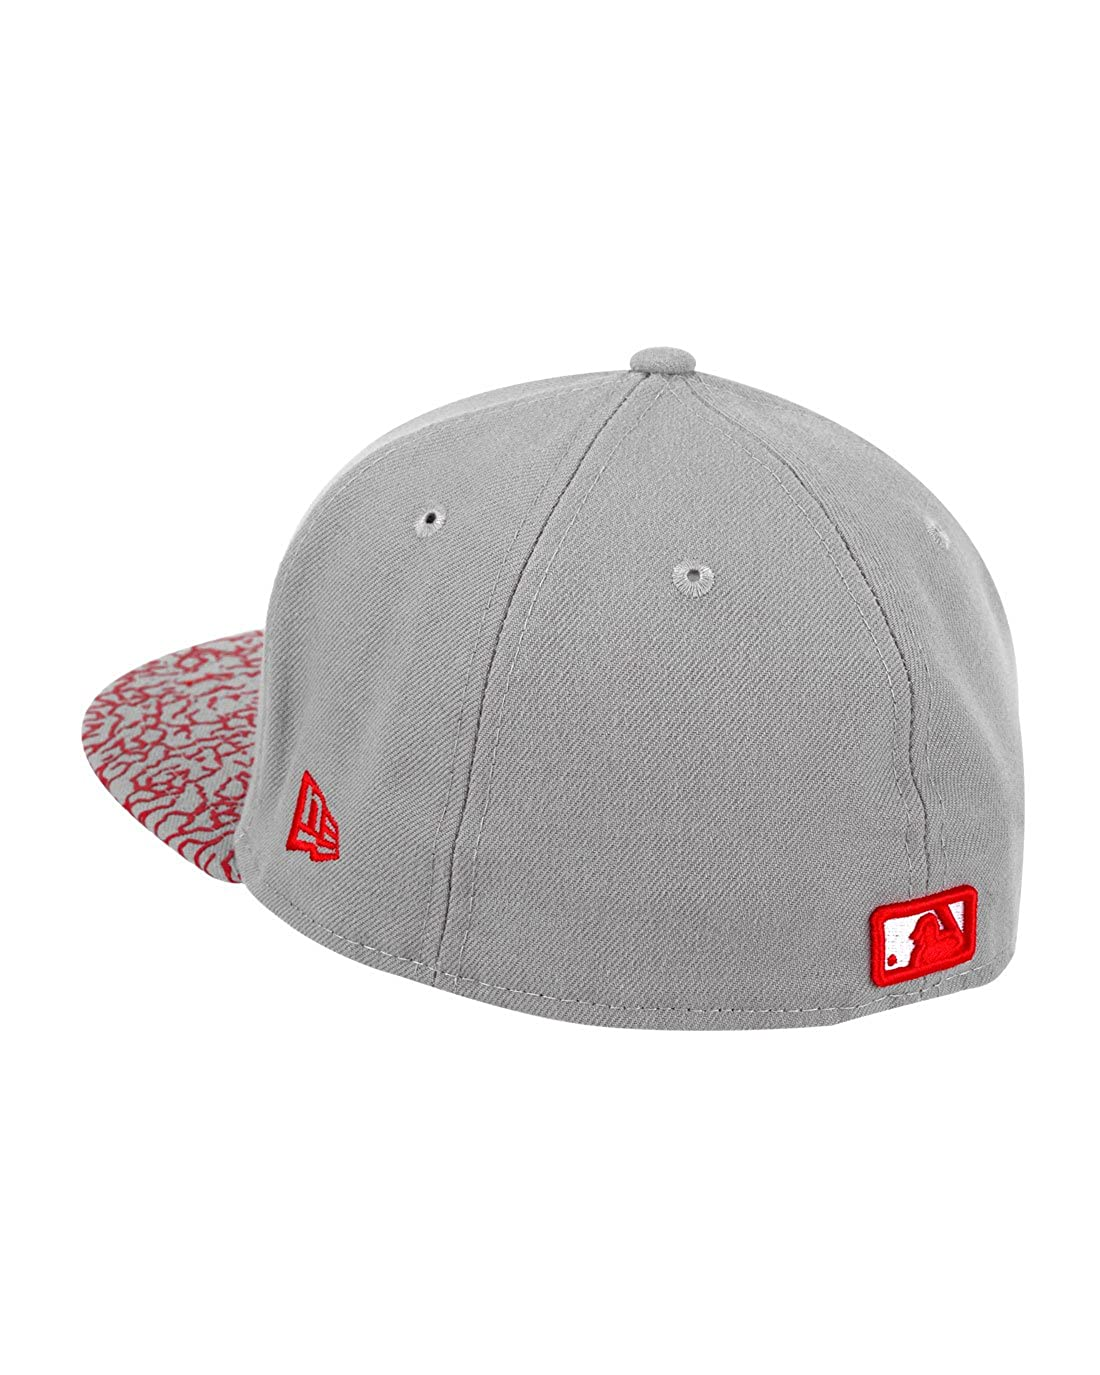 New Era 59fifty Chicago Cubs Crackle Visor Light Grey Red Flat Peak Fitted  Cap  Amazon.co.uk  Clothing cfb0419bb4b